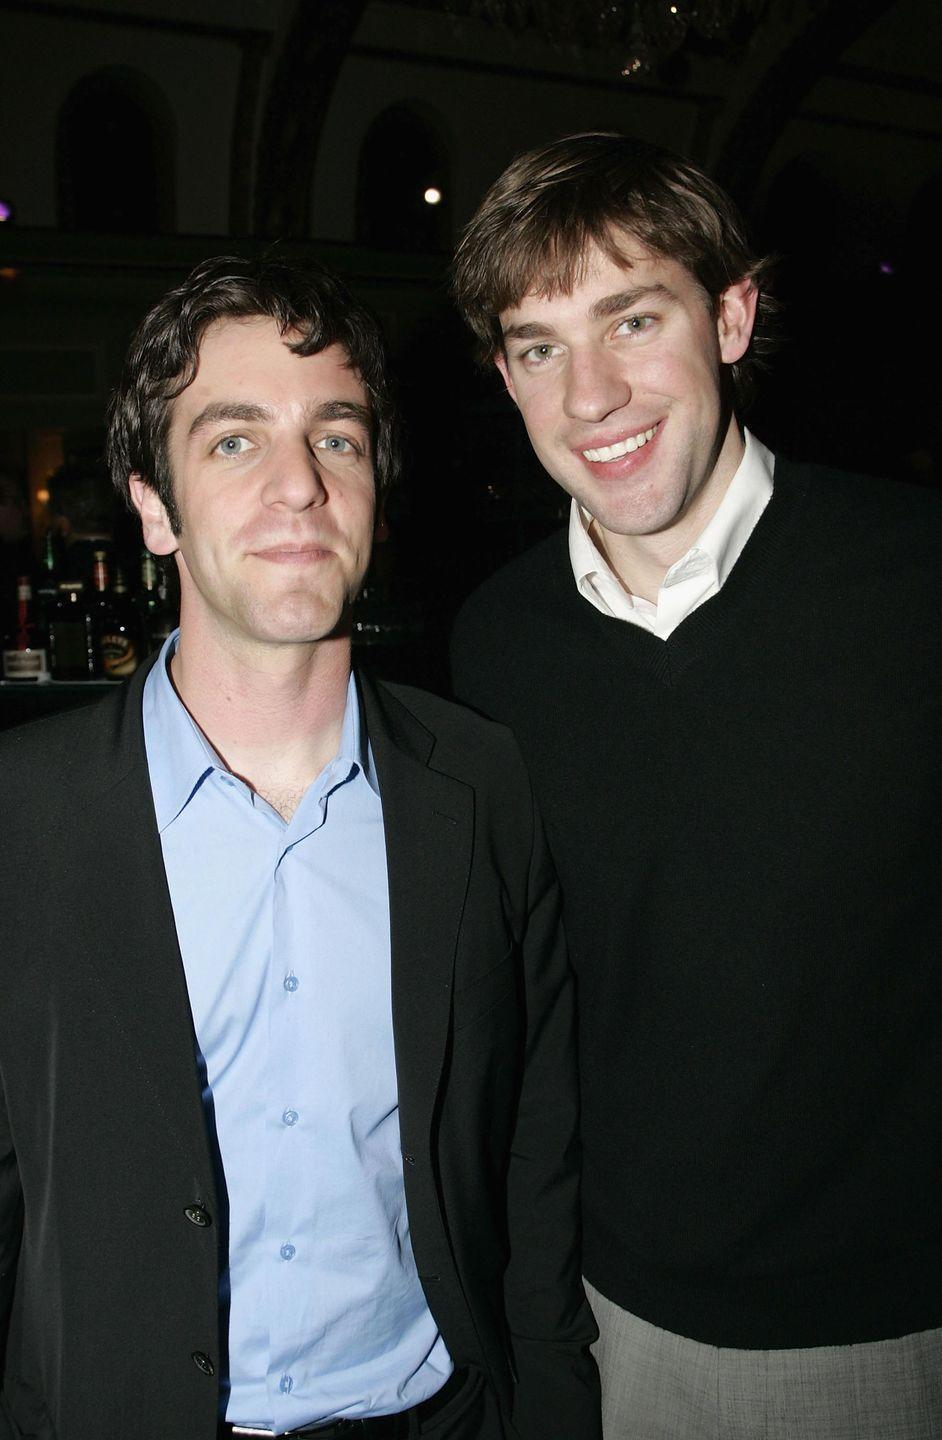 "<p>The actors behind <em>The Office</em>'s Ryan and Jim are also former classmates, alumni of Newton South High School. BJ Novak shared a few memories about their relationship on <em><a href=""https://www.youtube.com/watch?v=xQ1Yy0kjvjA"" rel=""nofollow noopener"" target=""_blank"" data-ylk=""slk:The Ellen Show"" class=""link rapid-noclick-resp"">The Ellen Show </a></em>in 2014. ""John Krasinski and I have known each other our whole lives in the weirdest, most coincidental way,"" Novak told Ellen. ""We played little league together!""</p>"